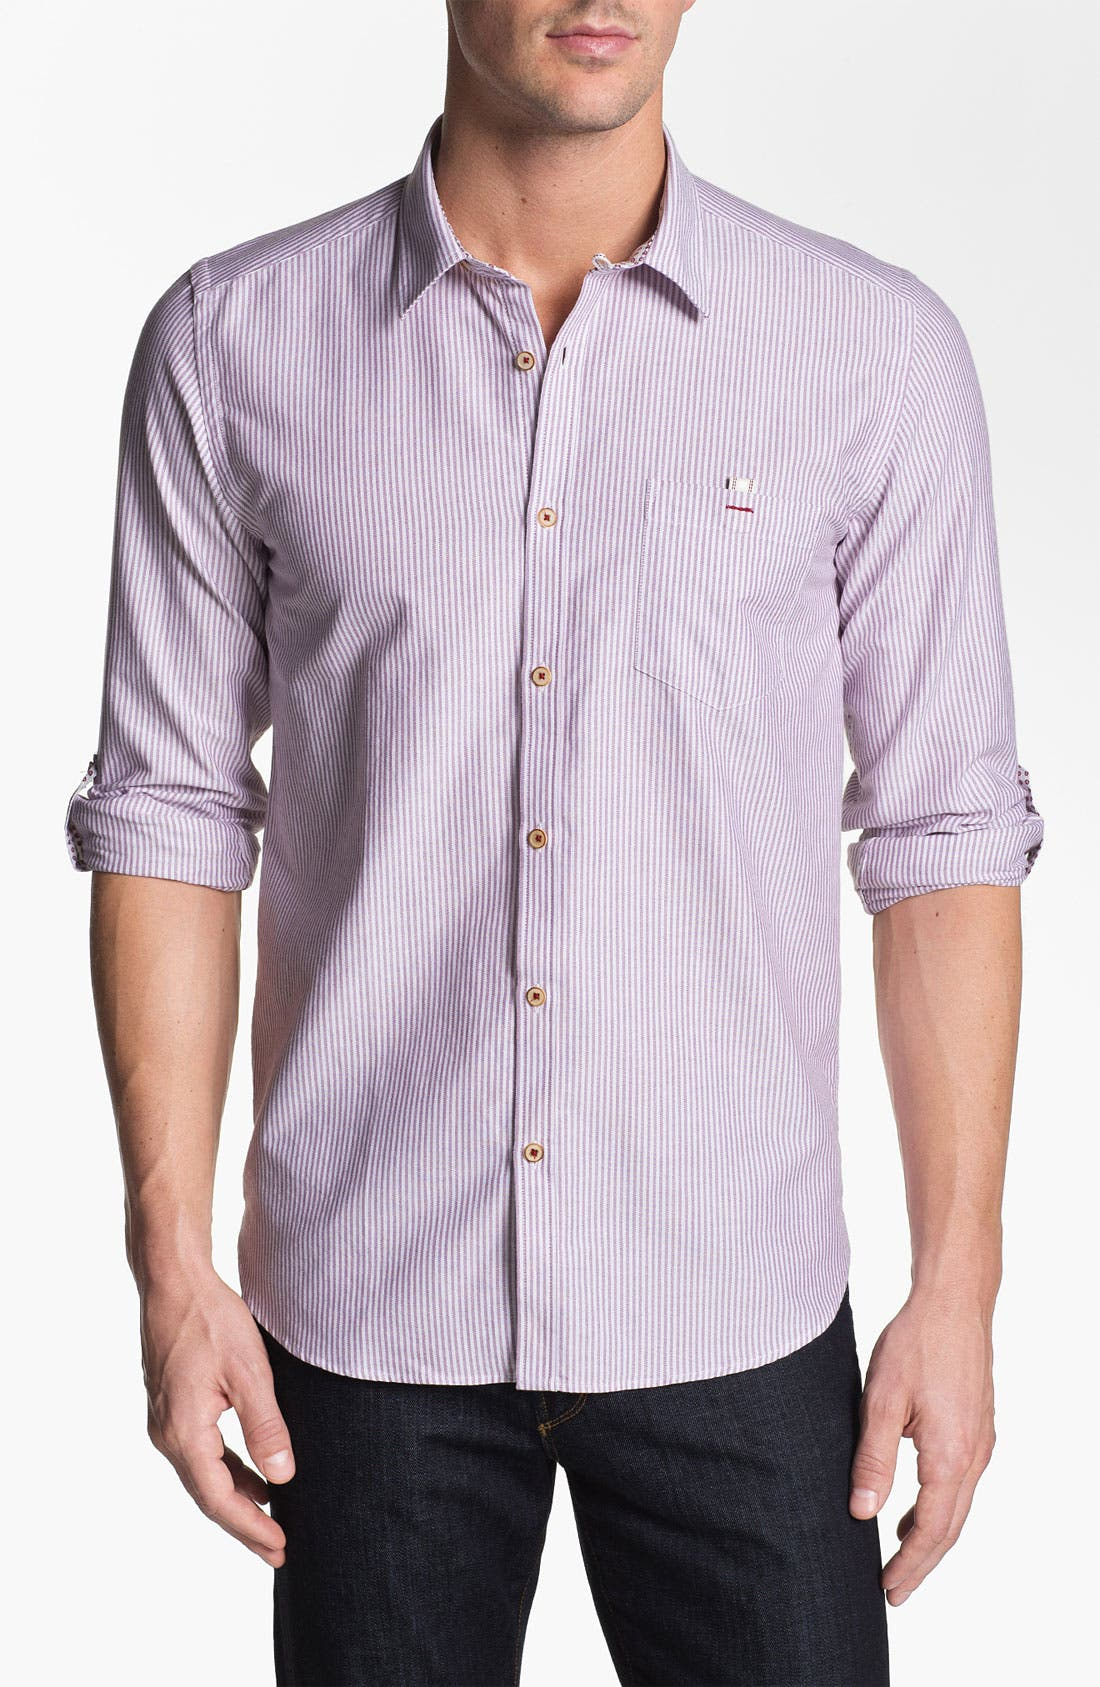 Alternate Image 1 Selected - Ted Baker London 'Oxno' Trim Fit Sport Shirt